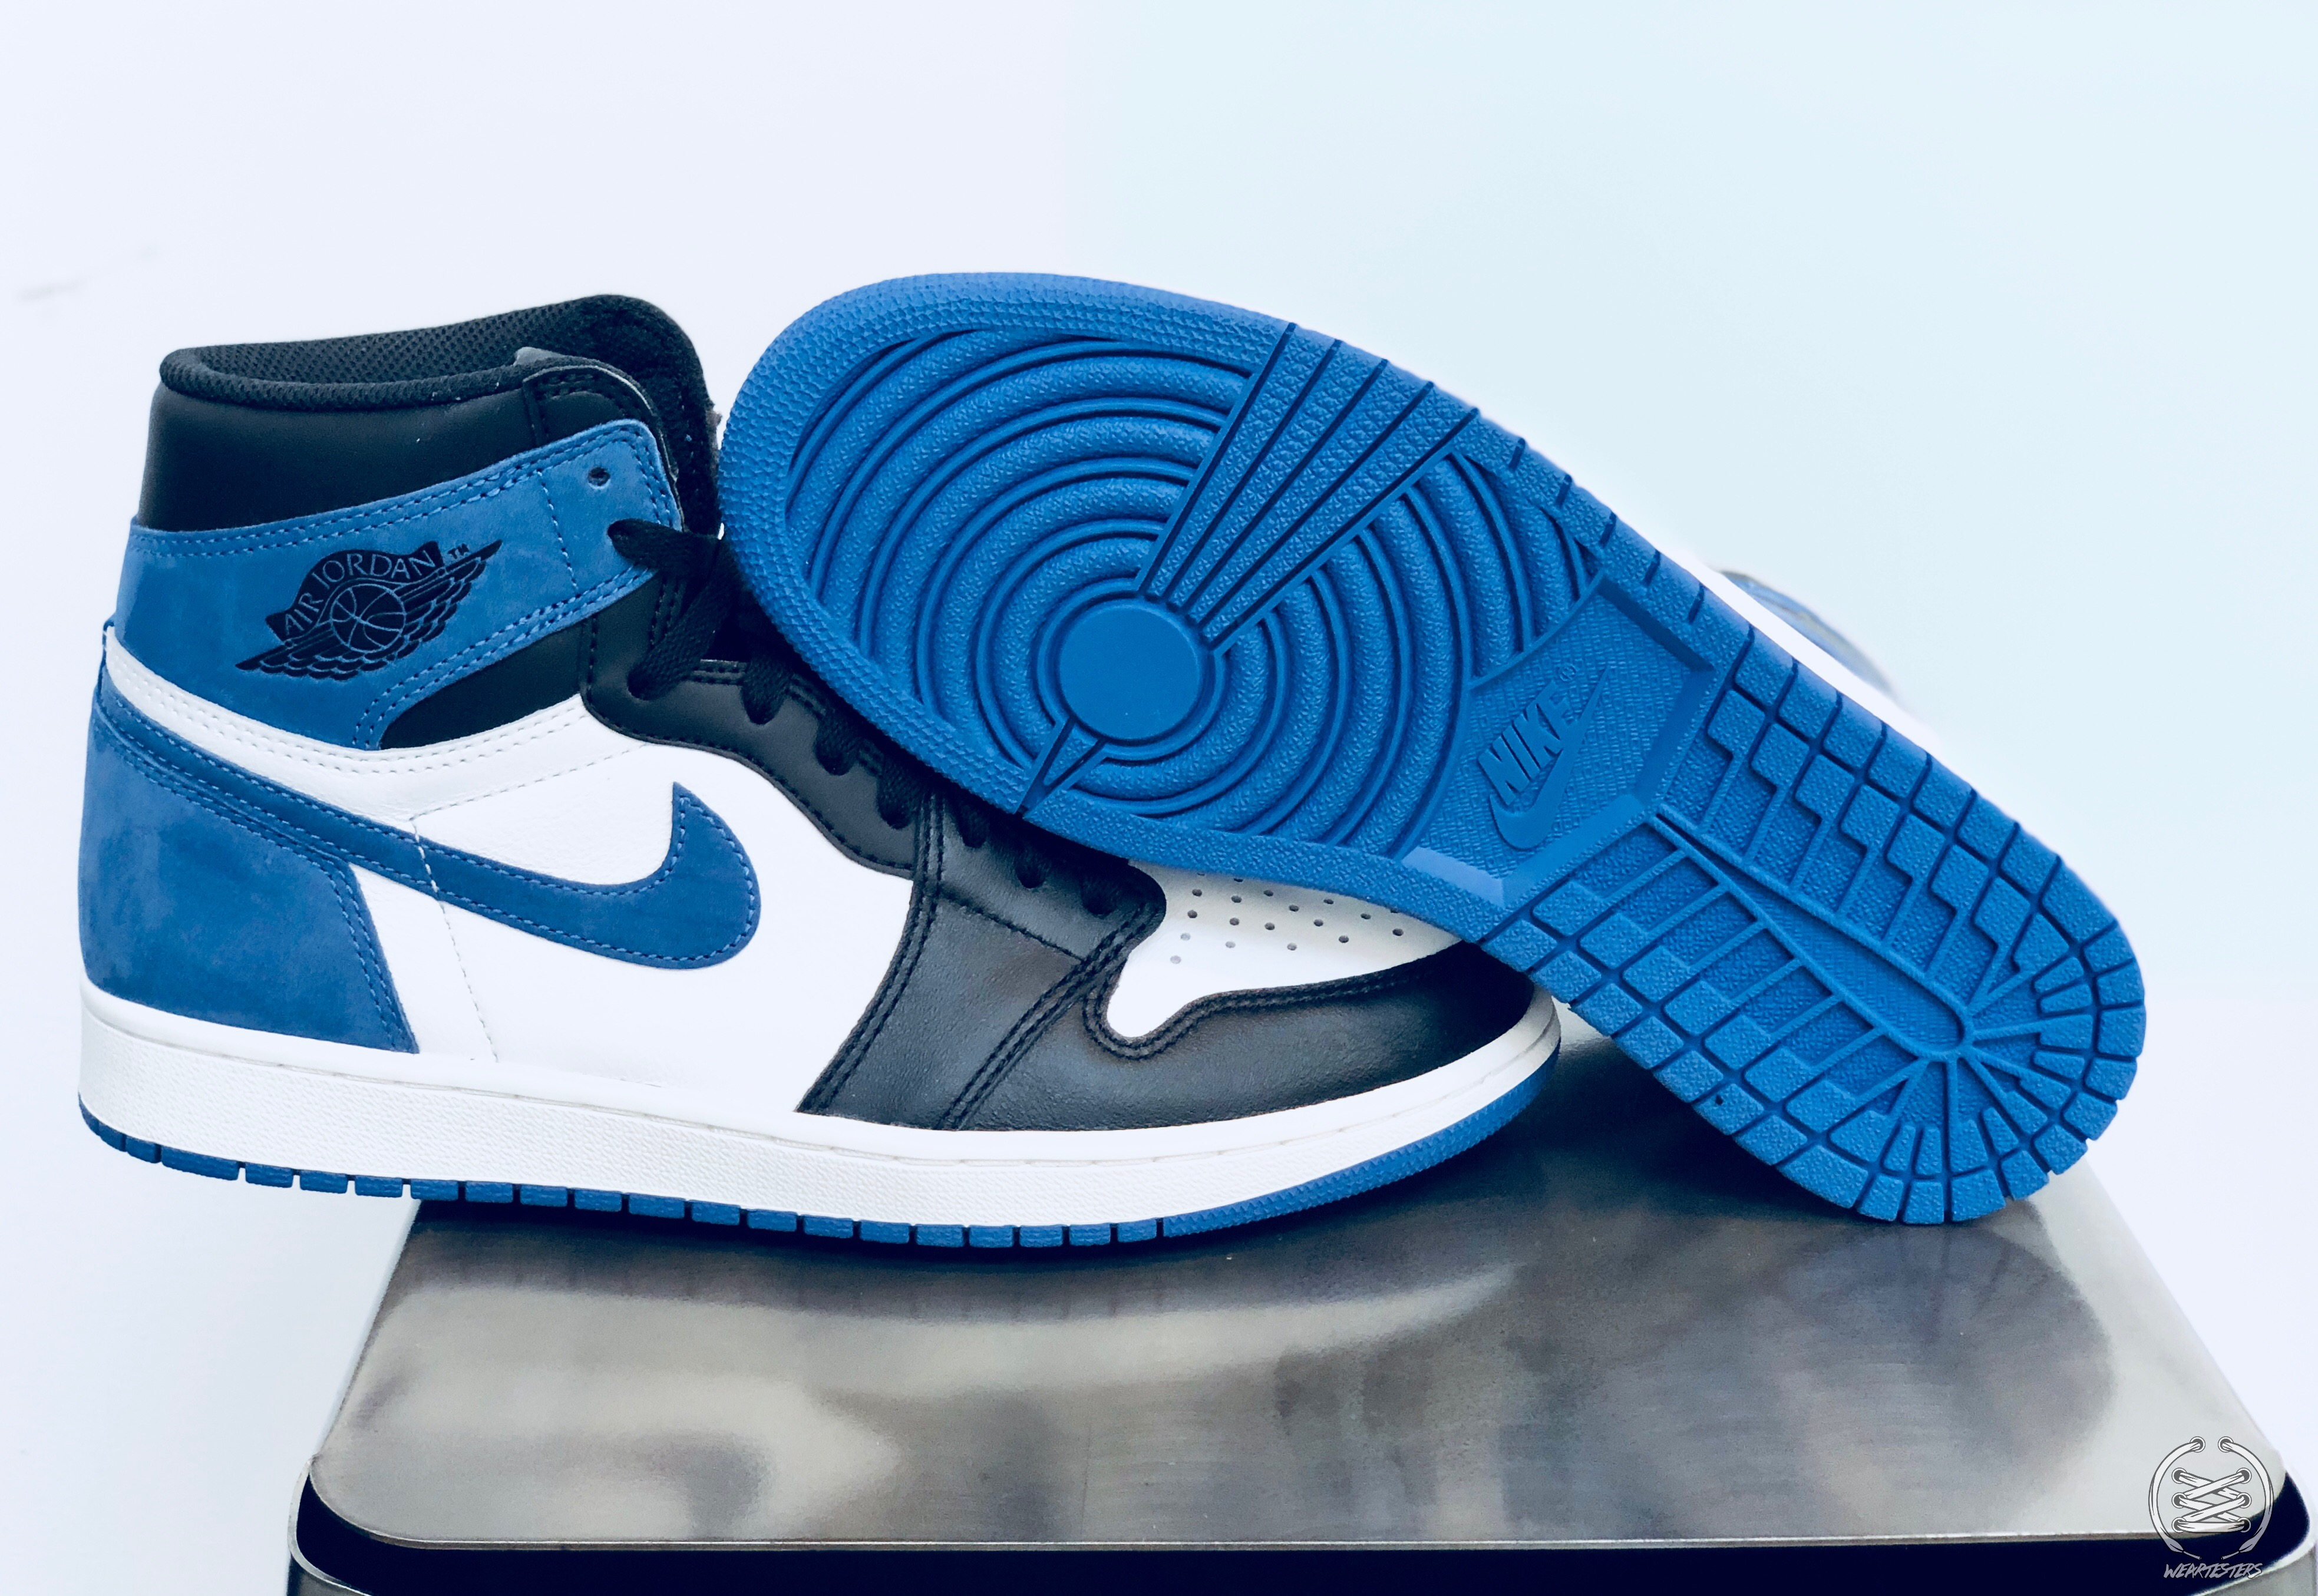 0b65135fbf3 Air Jordan 1 Blue Moon Best Hand in the Game collection 2 - WearTesters